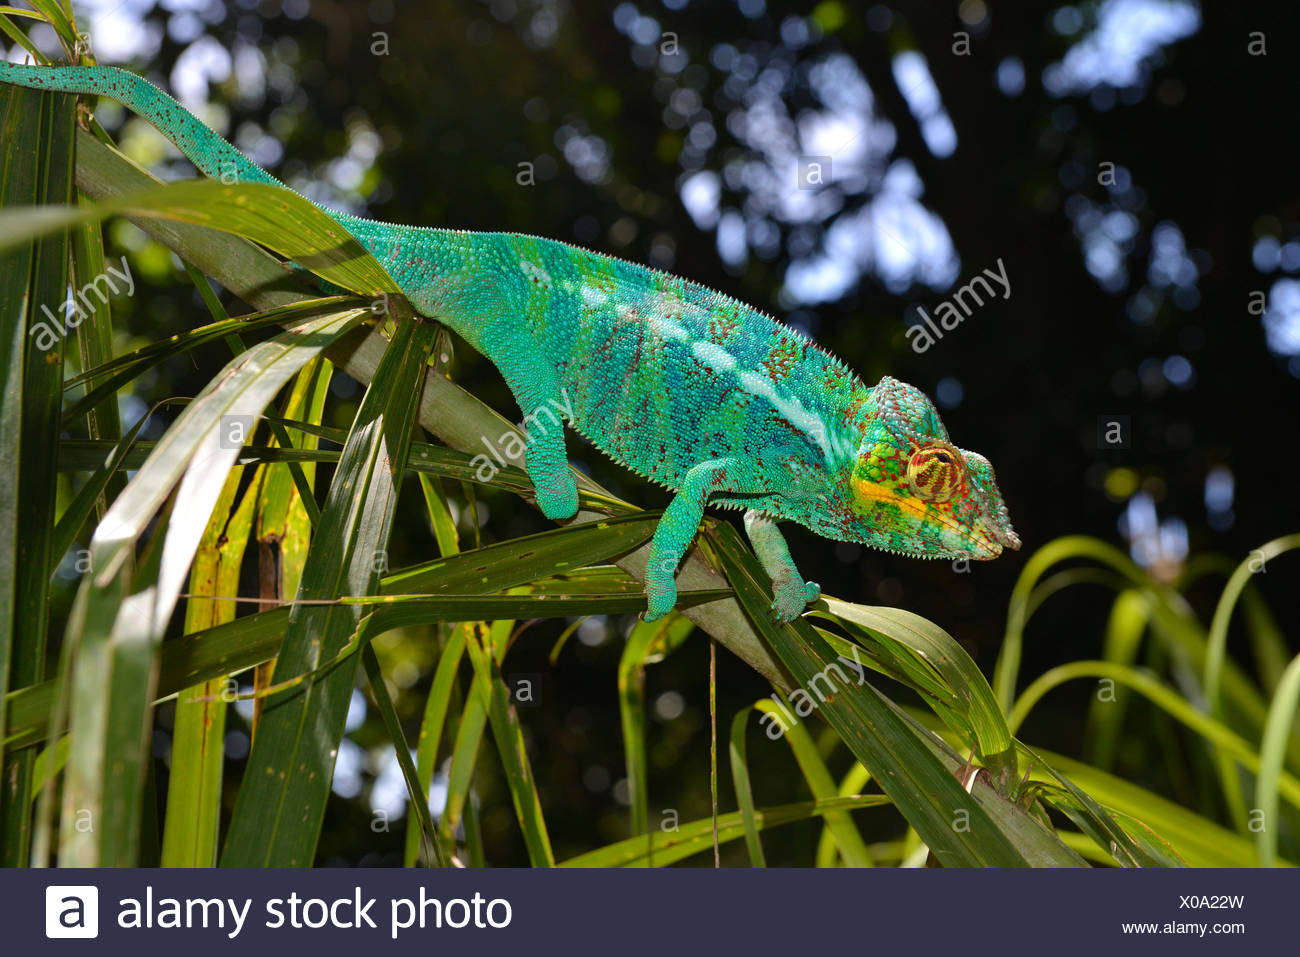 Male panther chameleon (Furcifer Pardalis), in the forests of the island of Nosy Komba, northwest of Madagascar, Madagascar - Stock Image